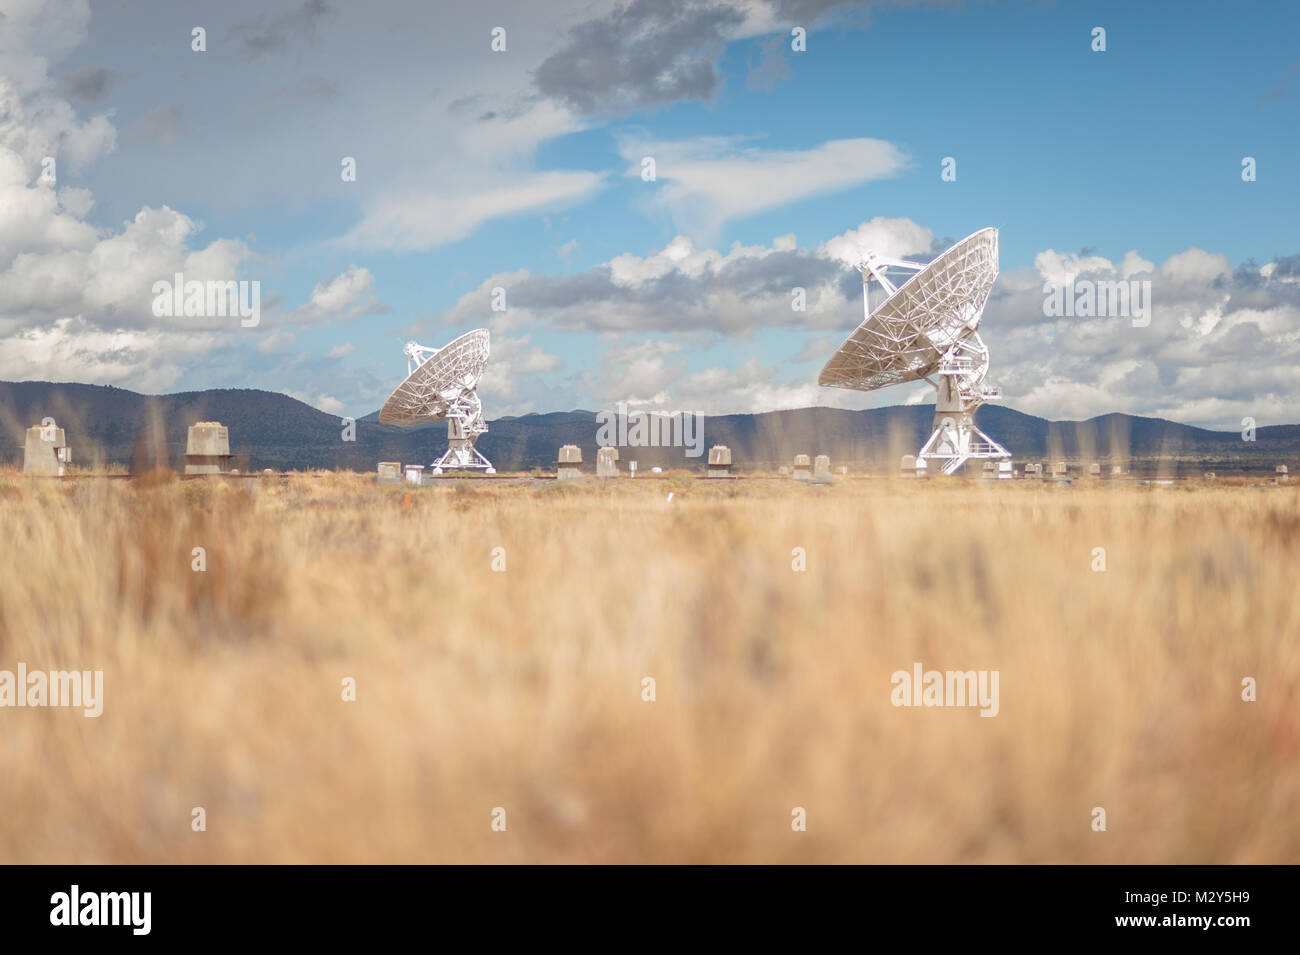 Very Large Array (VLA) Radio Telescopes with nature in the foreground located at the National Radio Astronomy Observatory Stock Photo